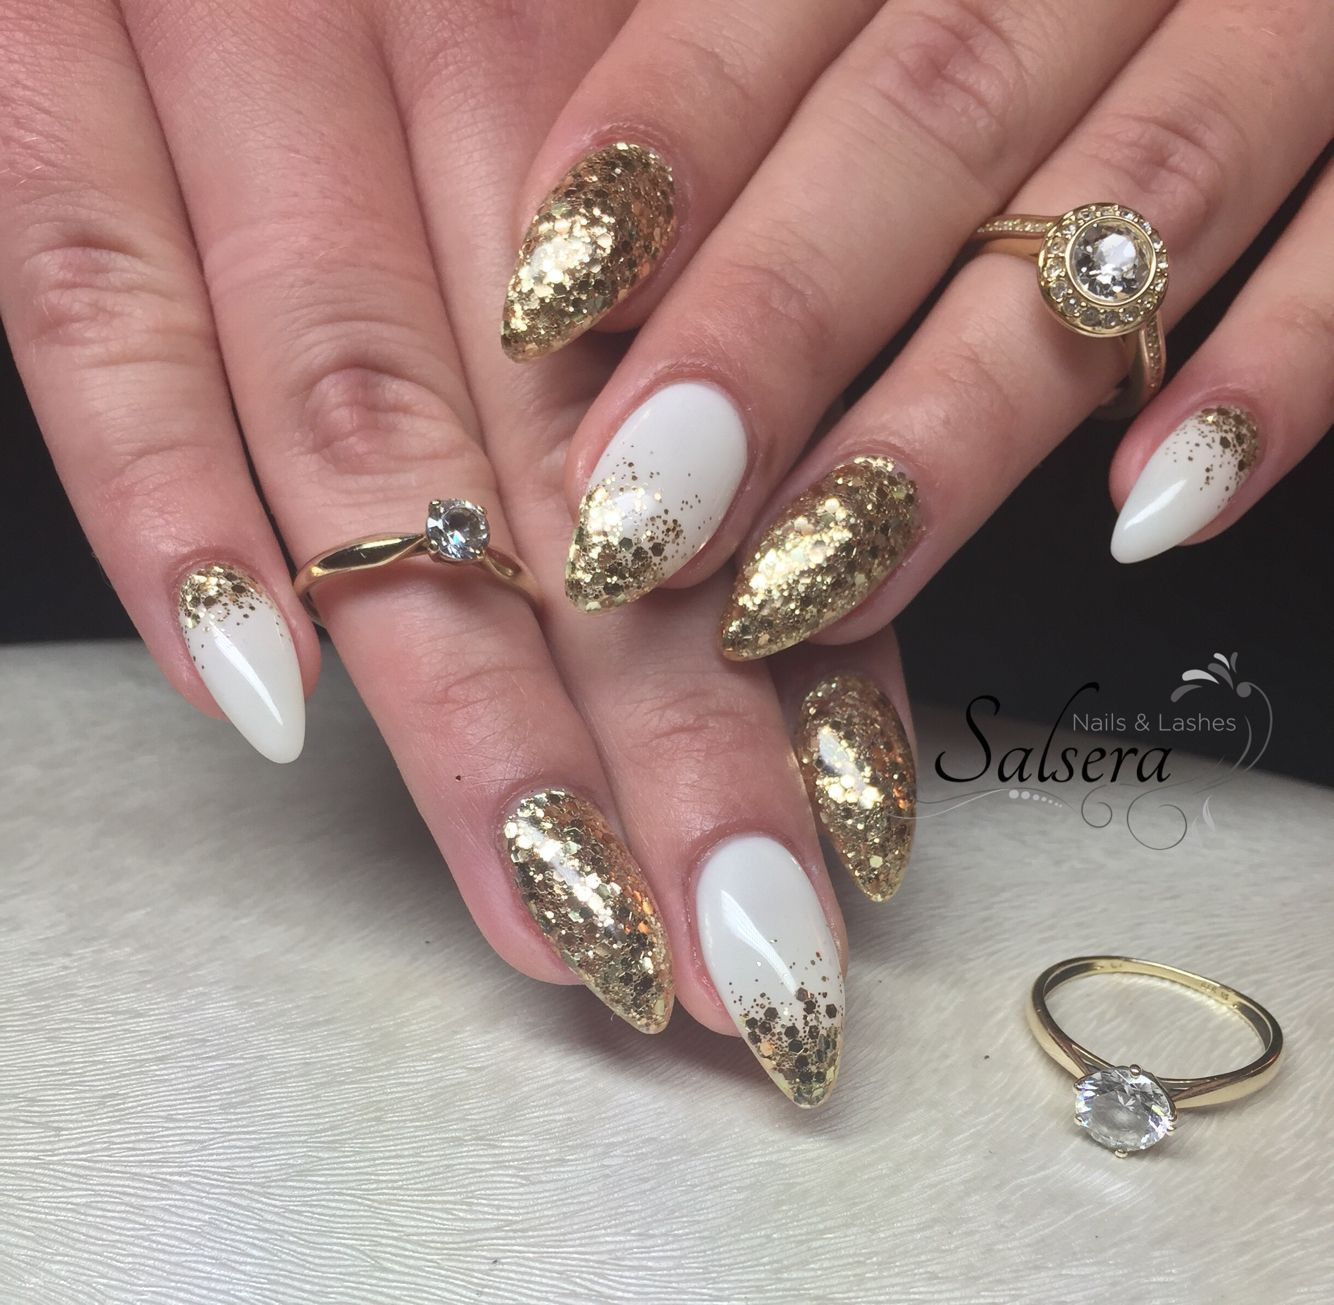 Nageldesign Gold Glitter  Nails Nägel Nageldesign Fullcover weiß white Gold Glitter